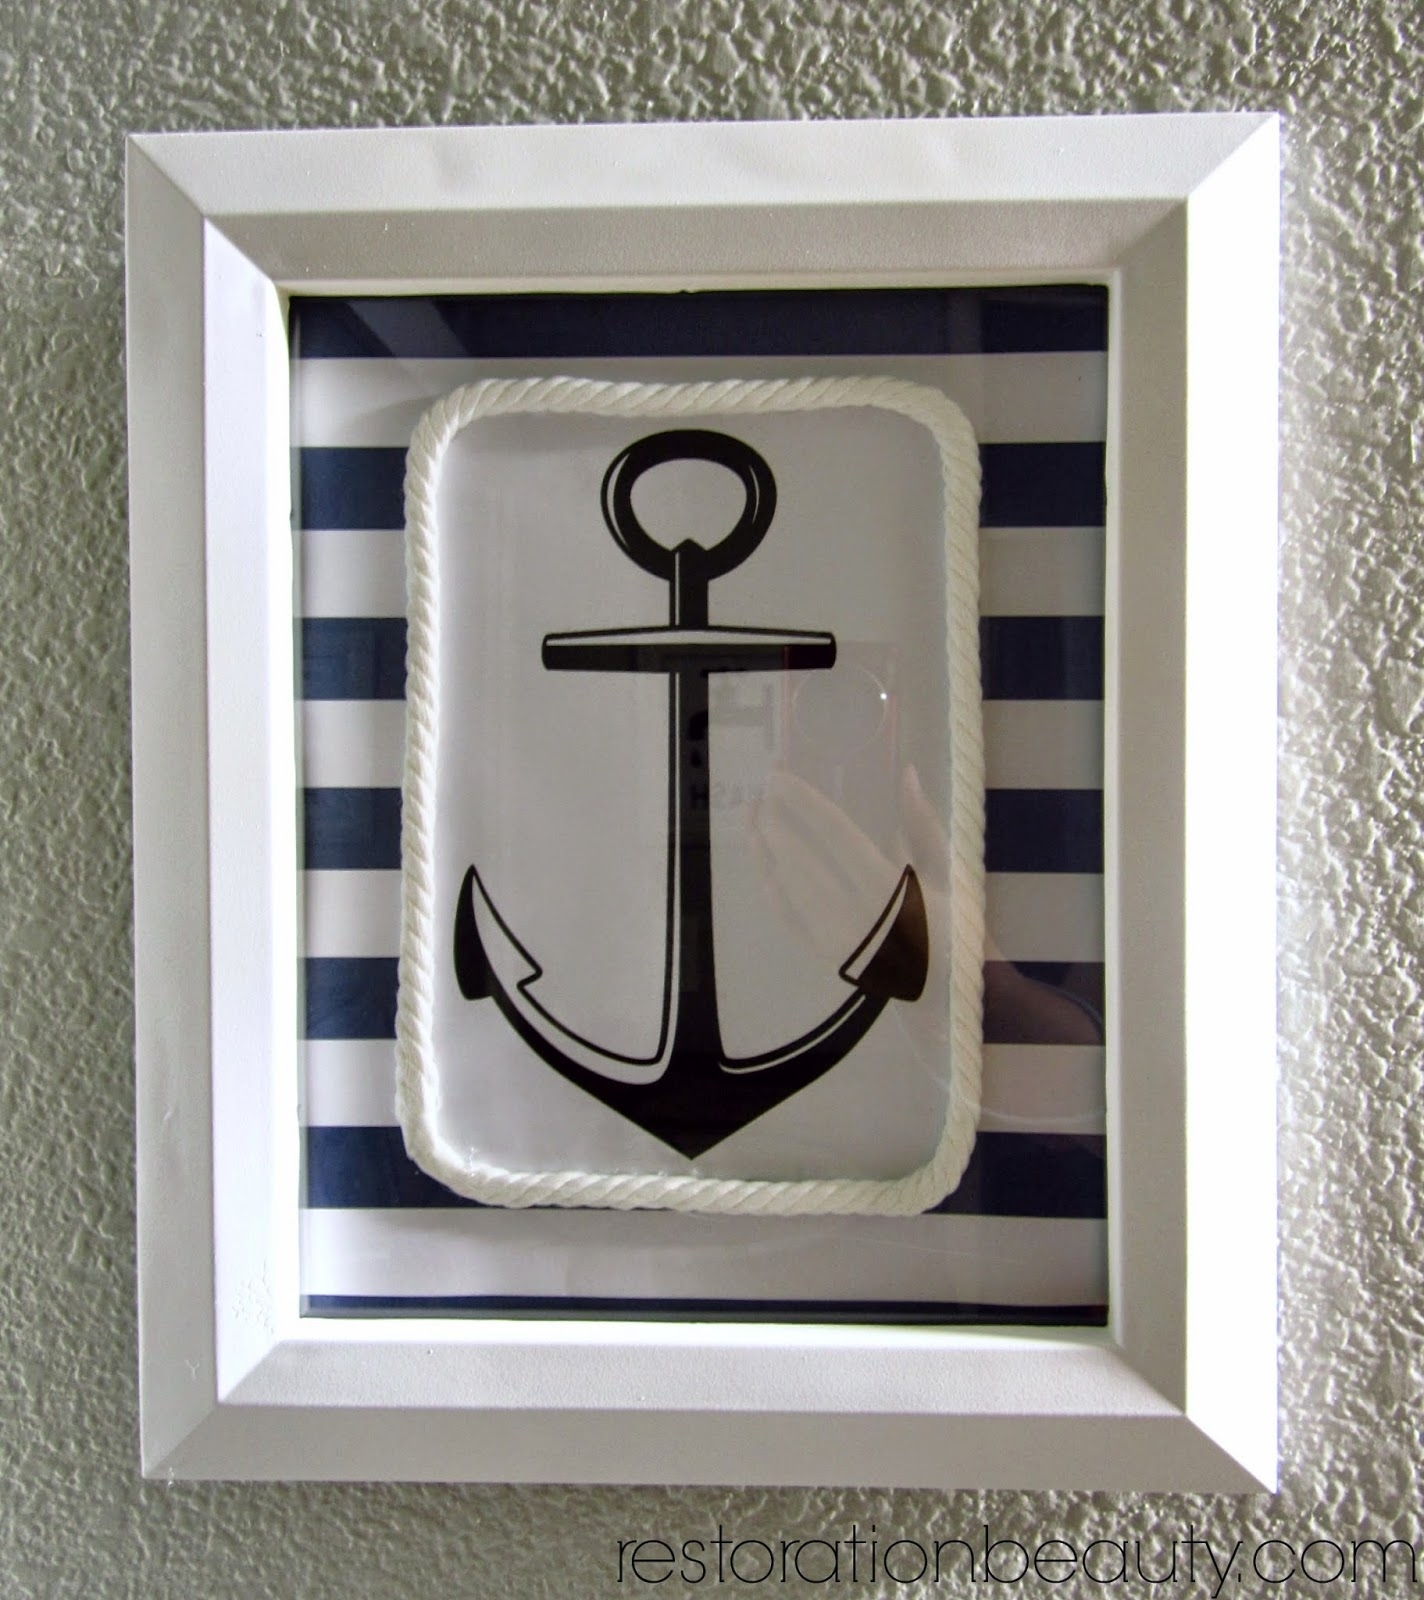 Restoration Beauty: Diy Nautical Wall Art Throughout Most Popular Nautical Wall Art (Gallery 15 of 15)